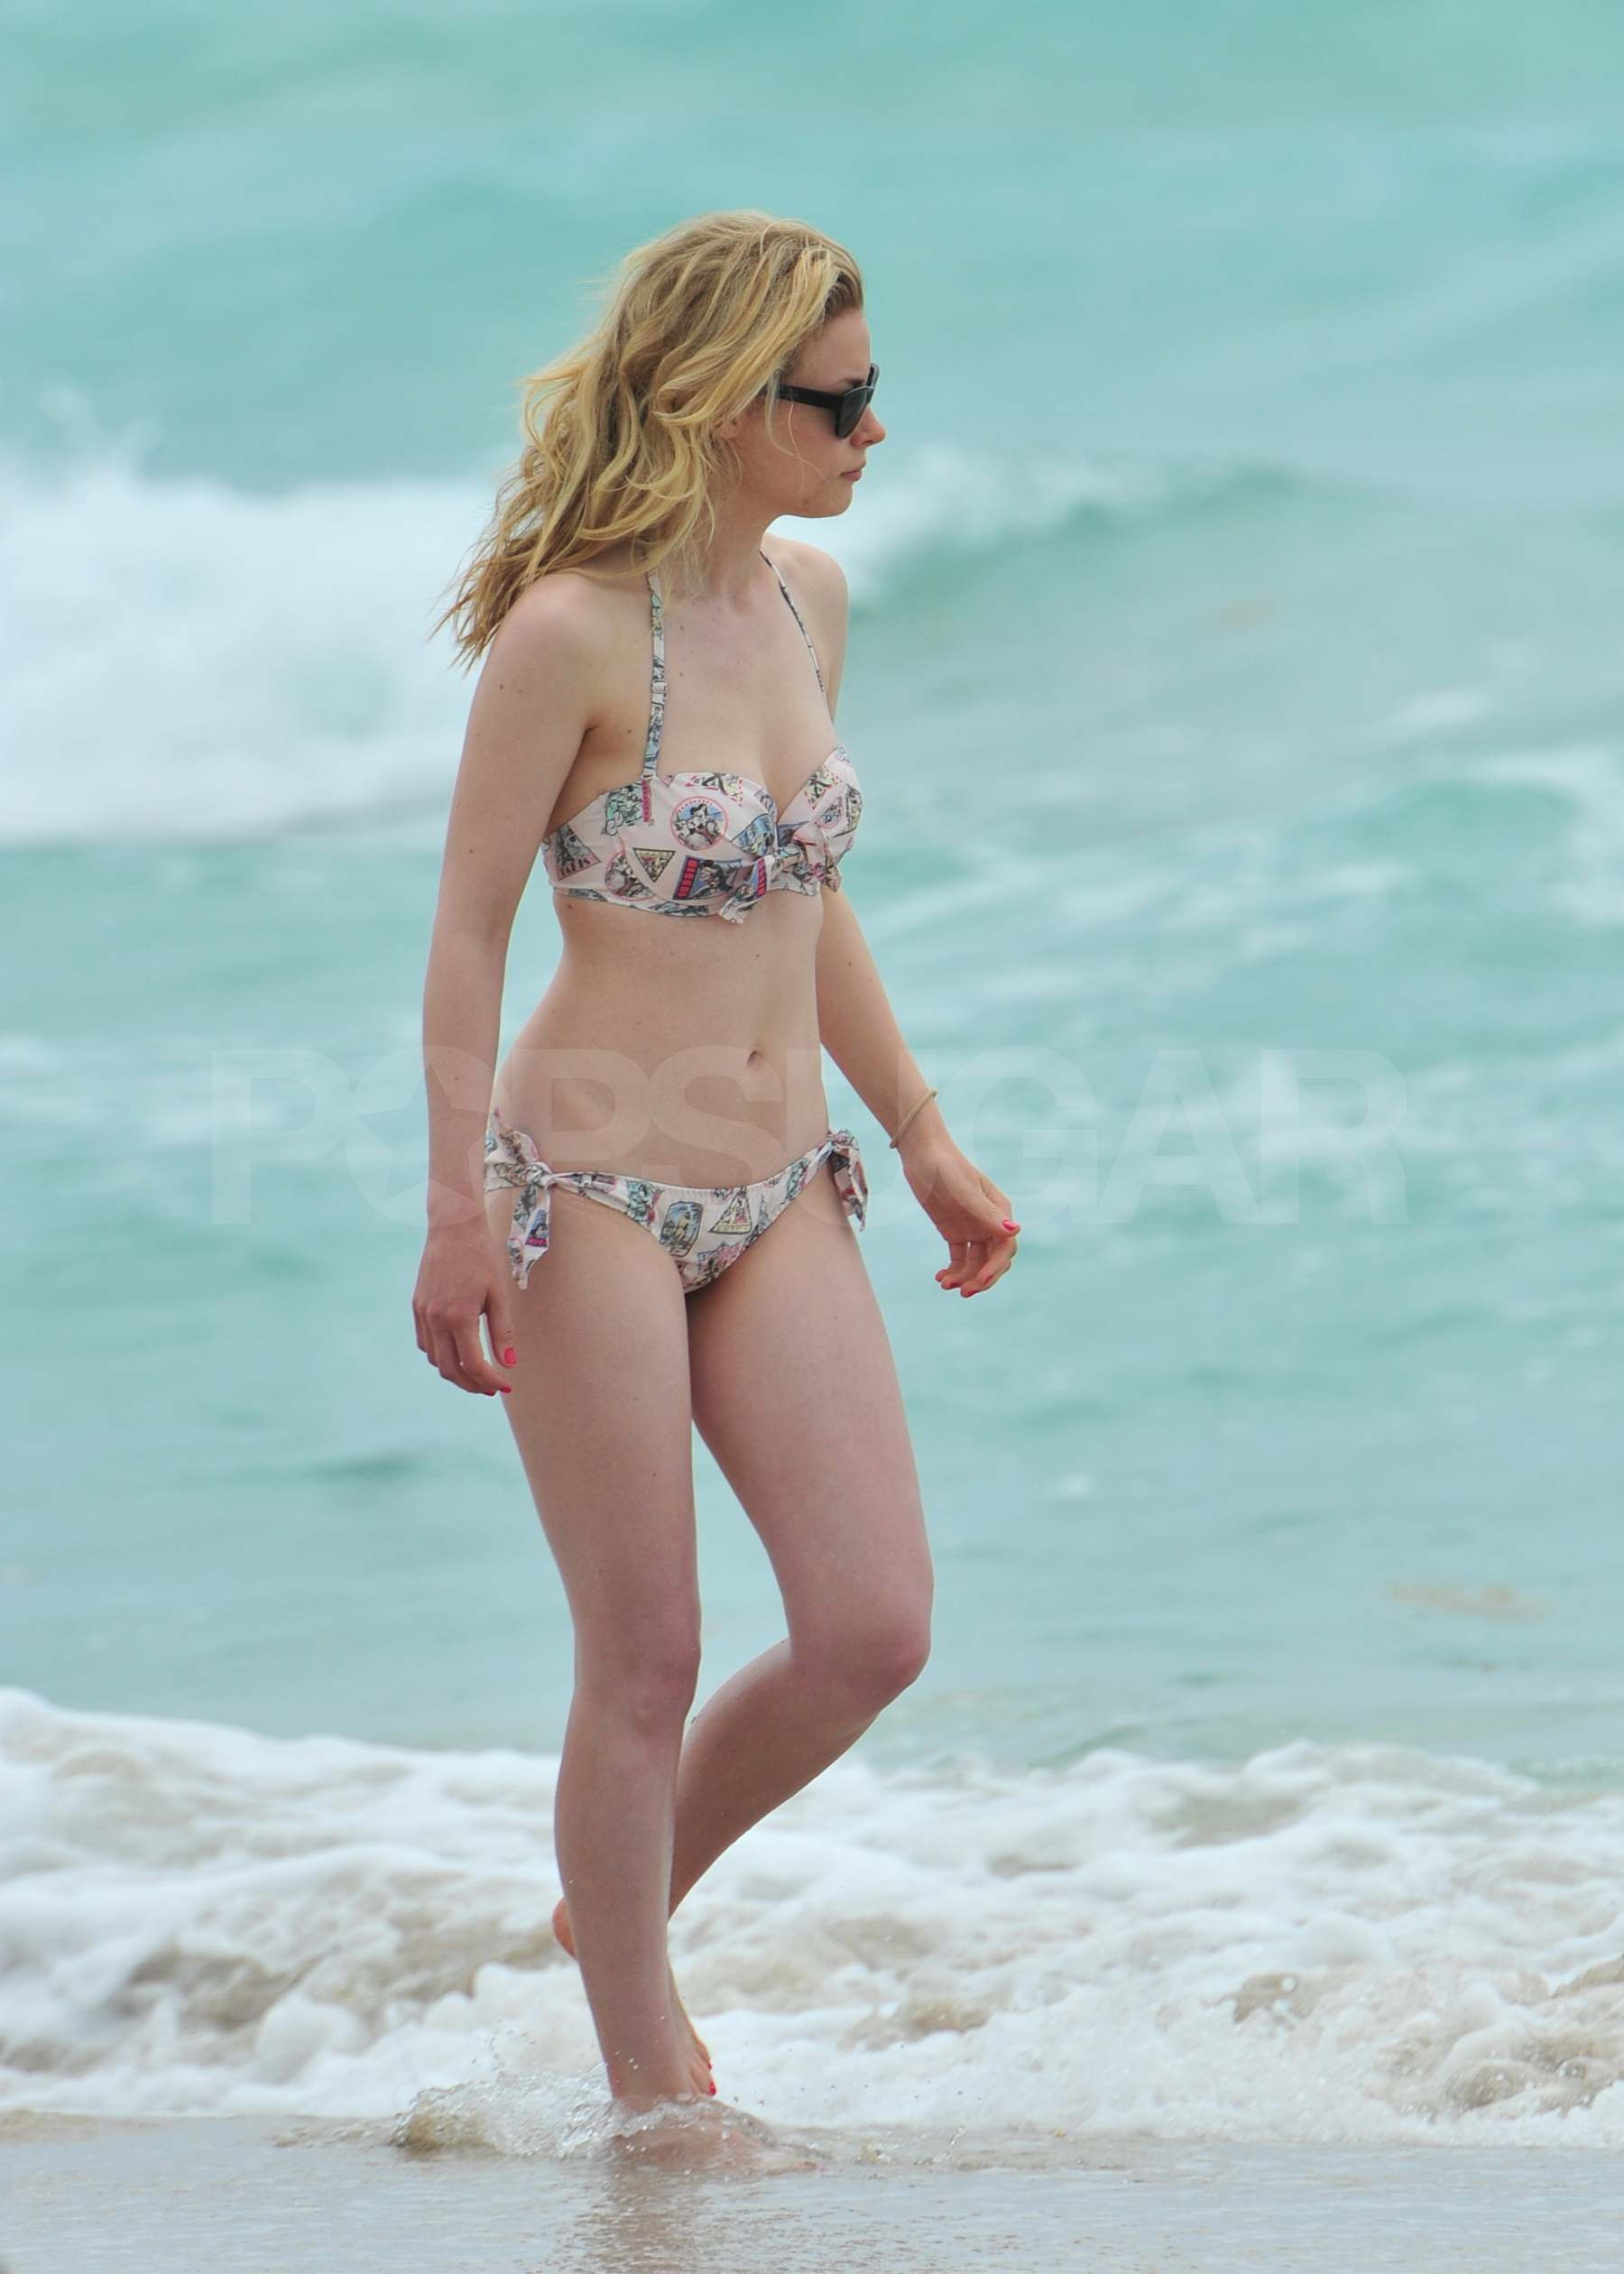 Gillian Jacobs on Beach